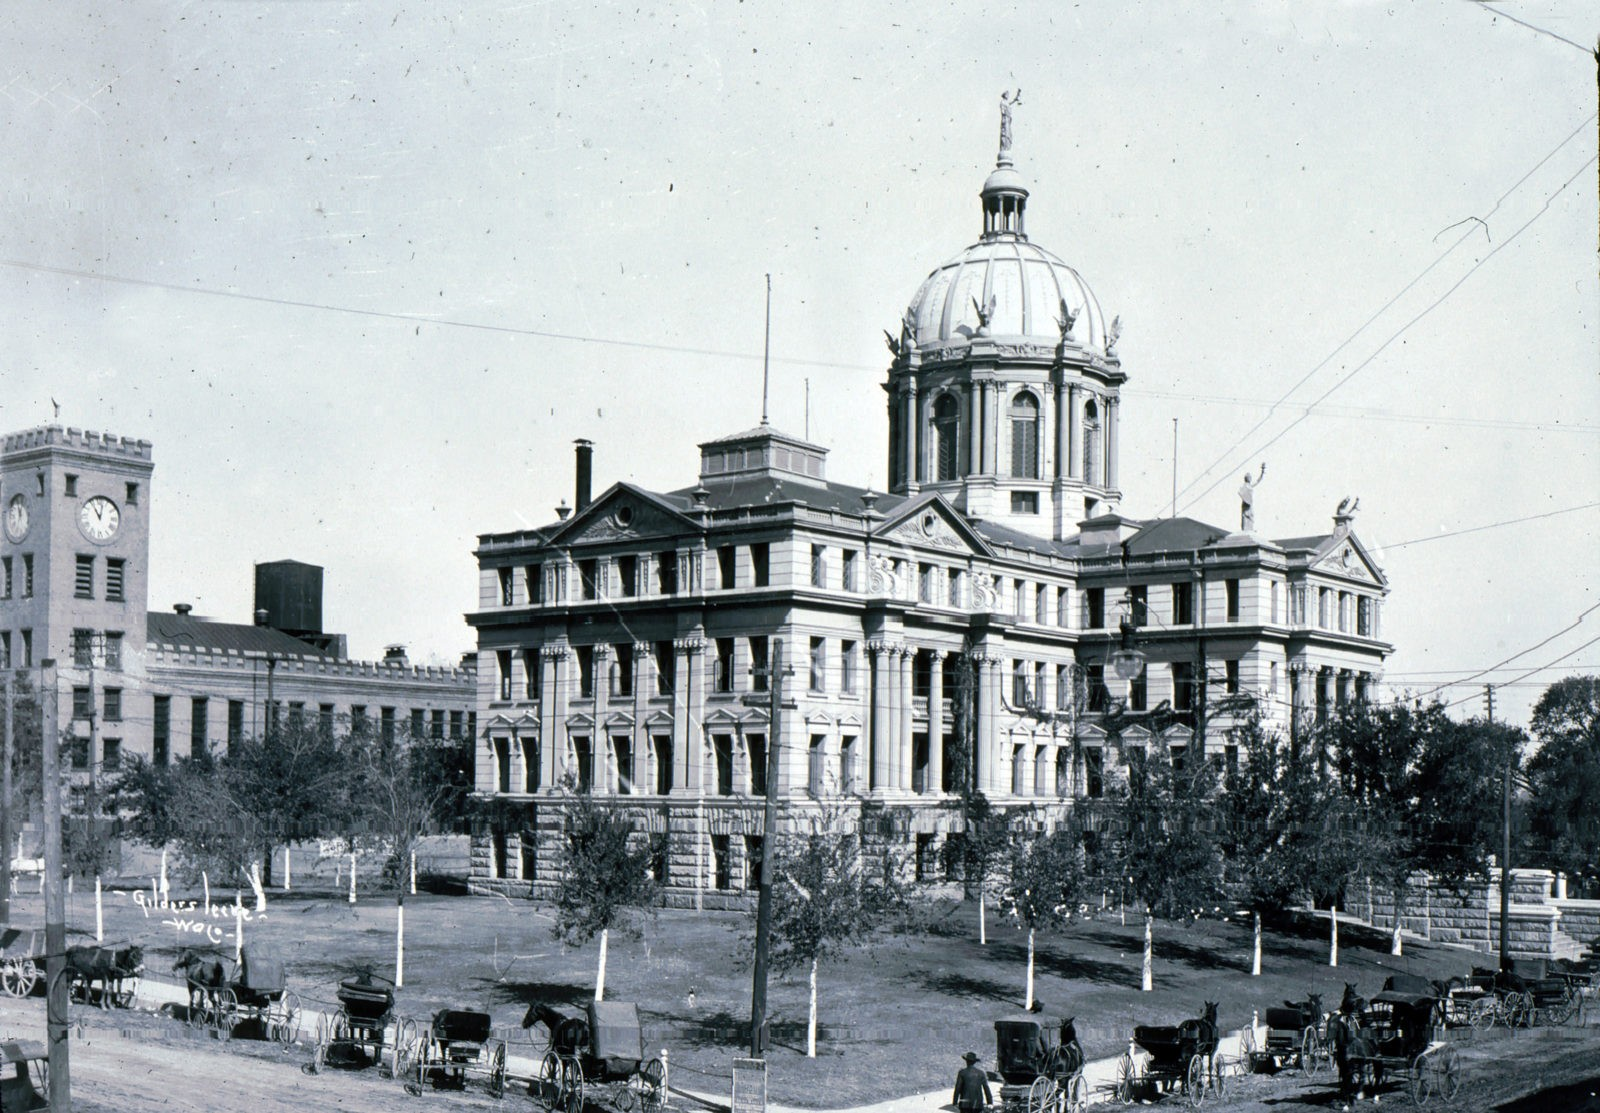 025 - Courthouse & Old Jail - 1912